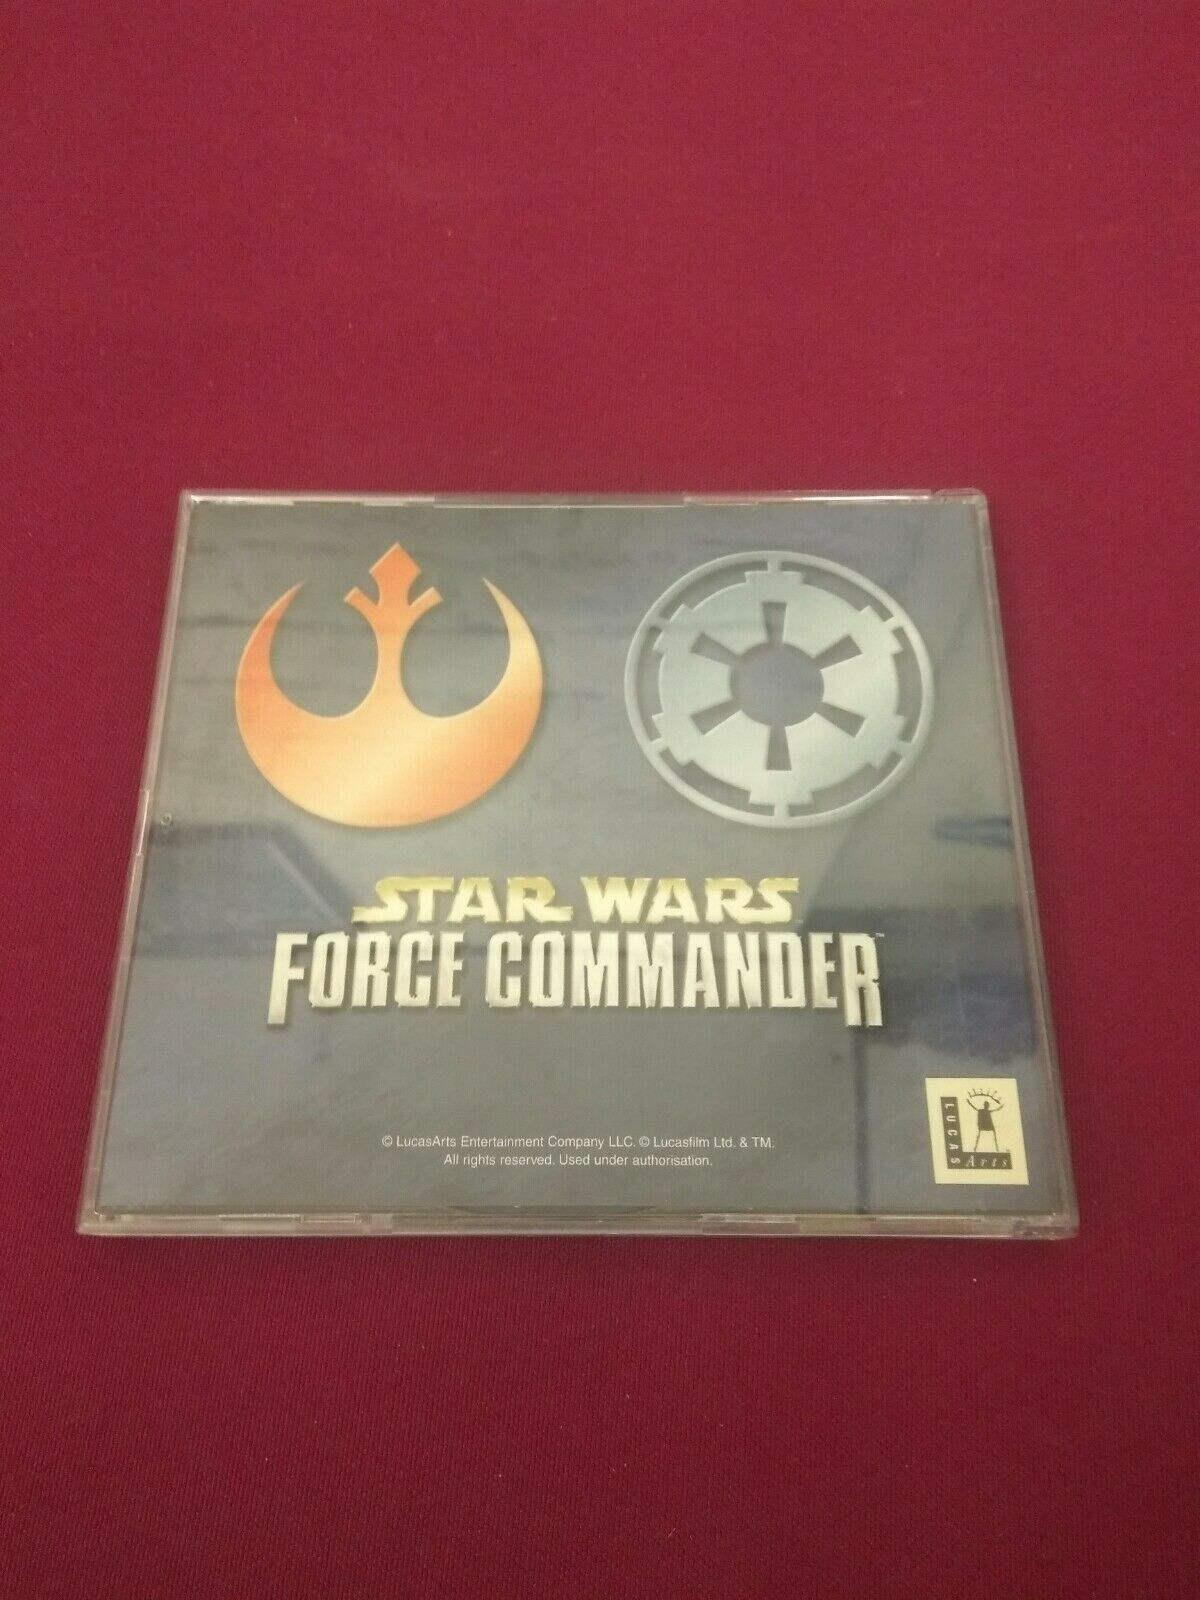 Star Wars: Force Commander PC CD ROM free - Occasion StarWars